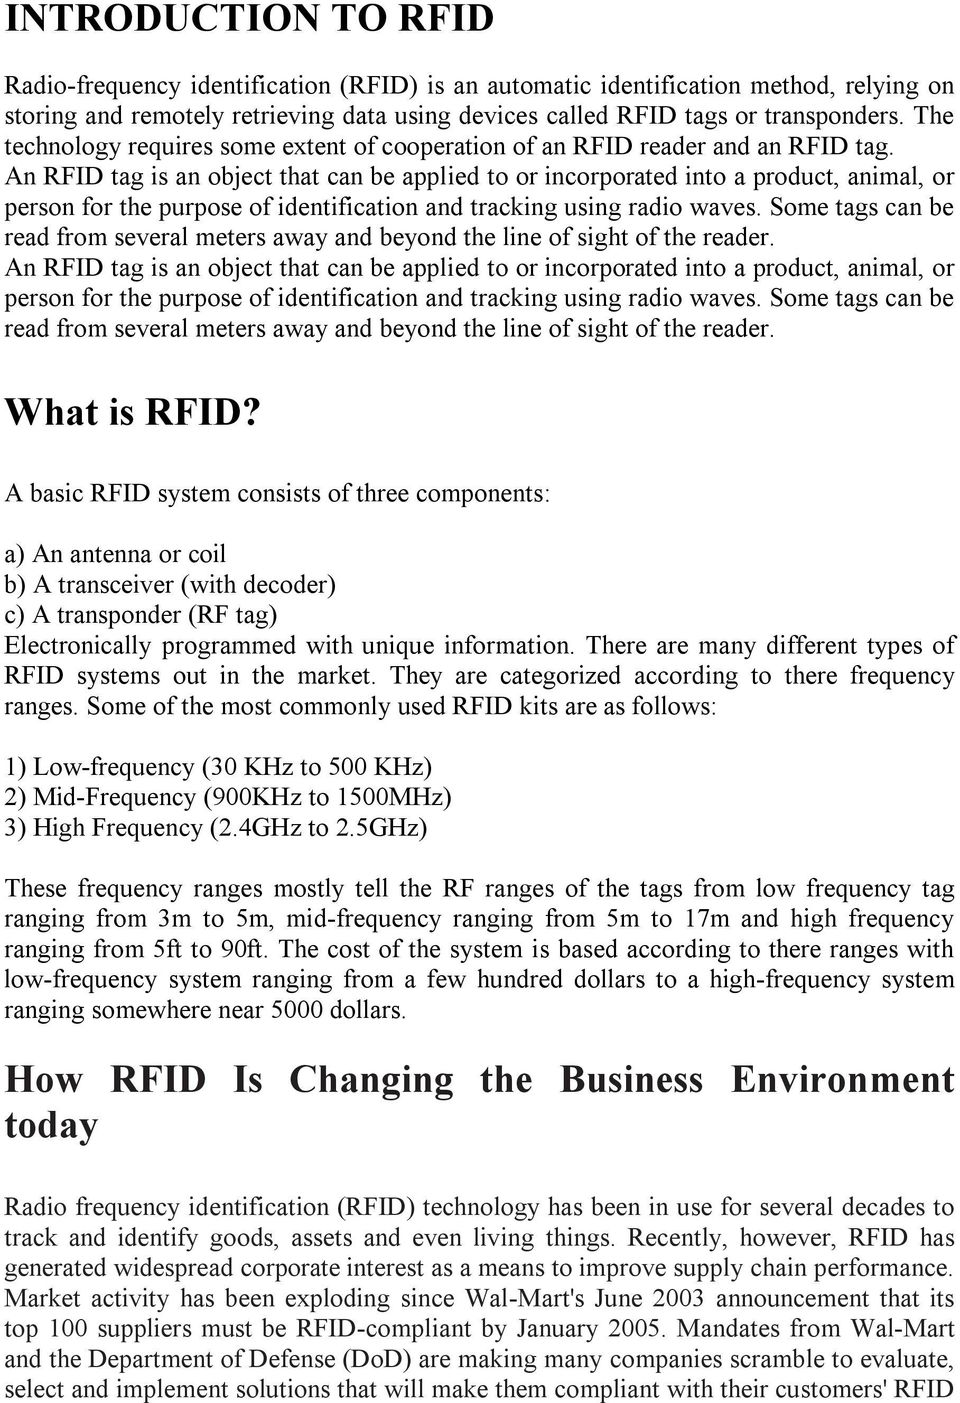 An RFID tag is an object that can be applied to or incorporated into a product, animal, or person for the purpose of identification and tracking using radio waves.